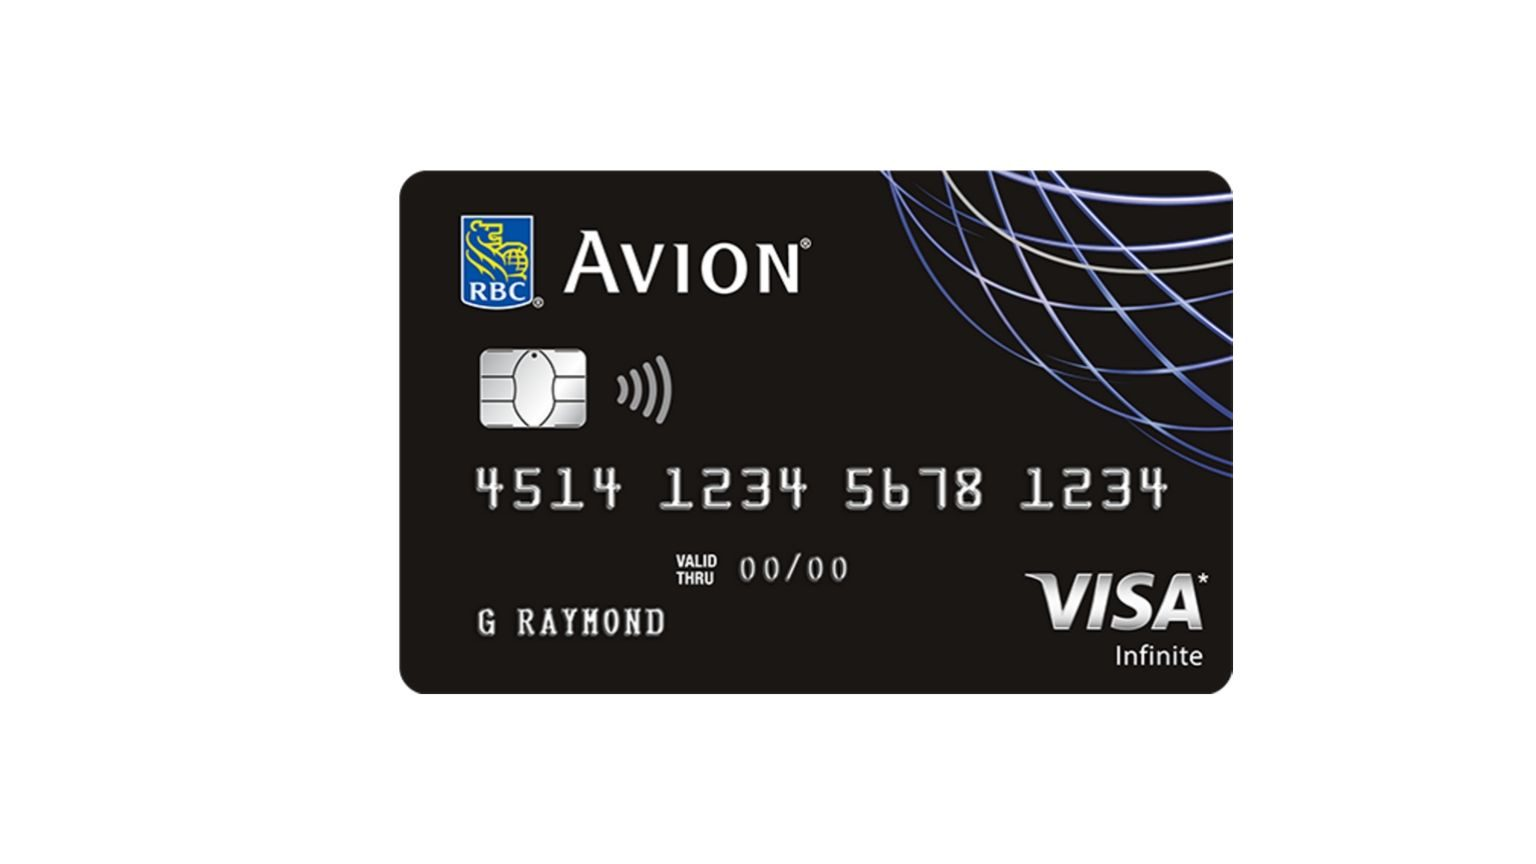 Want to earn flexible travel rewards with no blackout periods? Avoid travel restrictions when you book flights with an RBC Avion credit card.